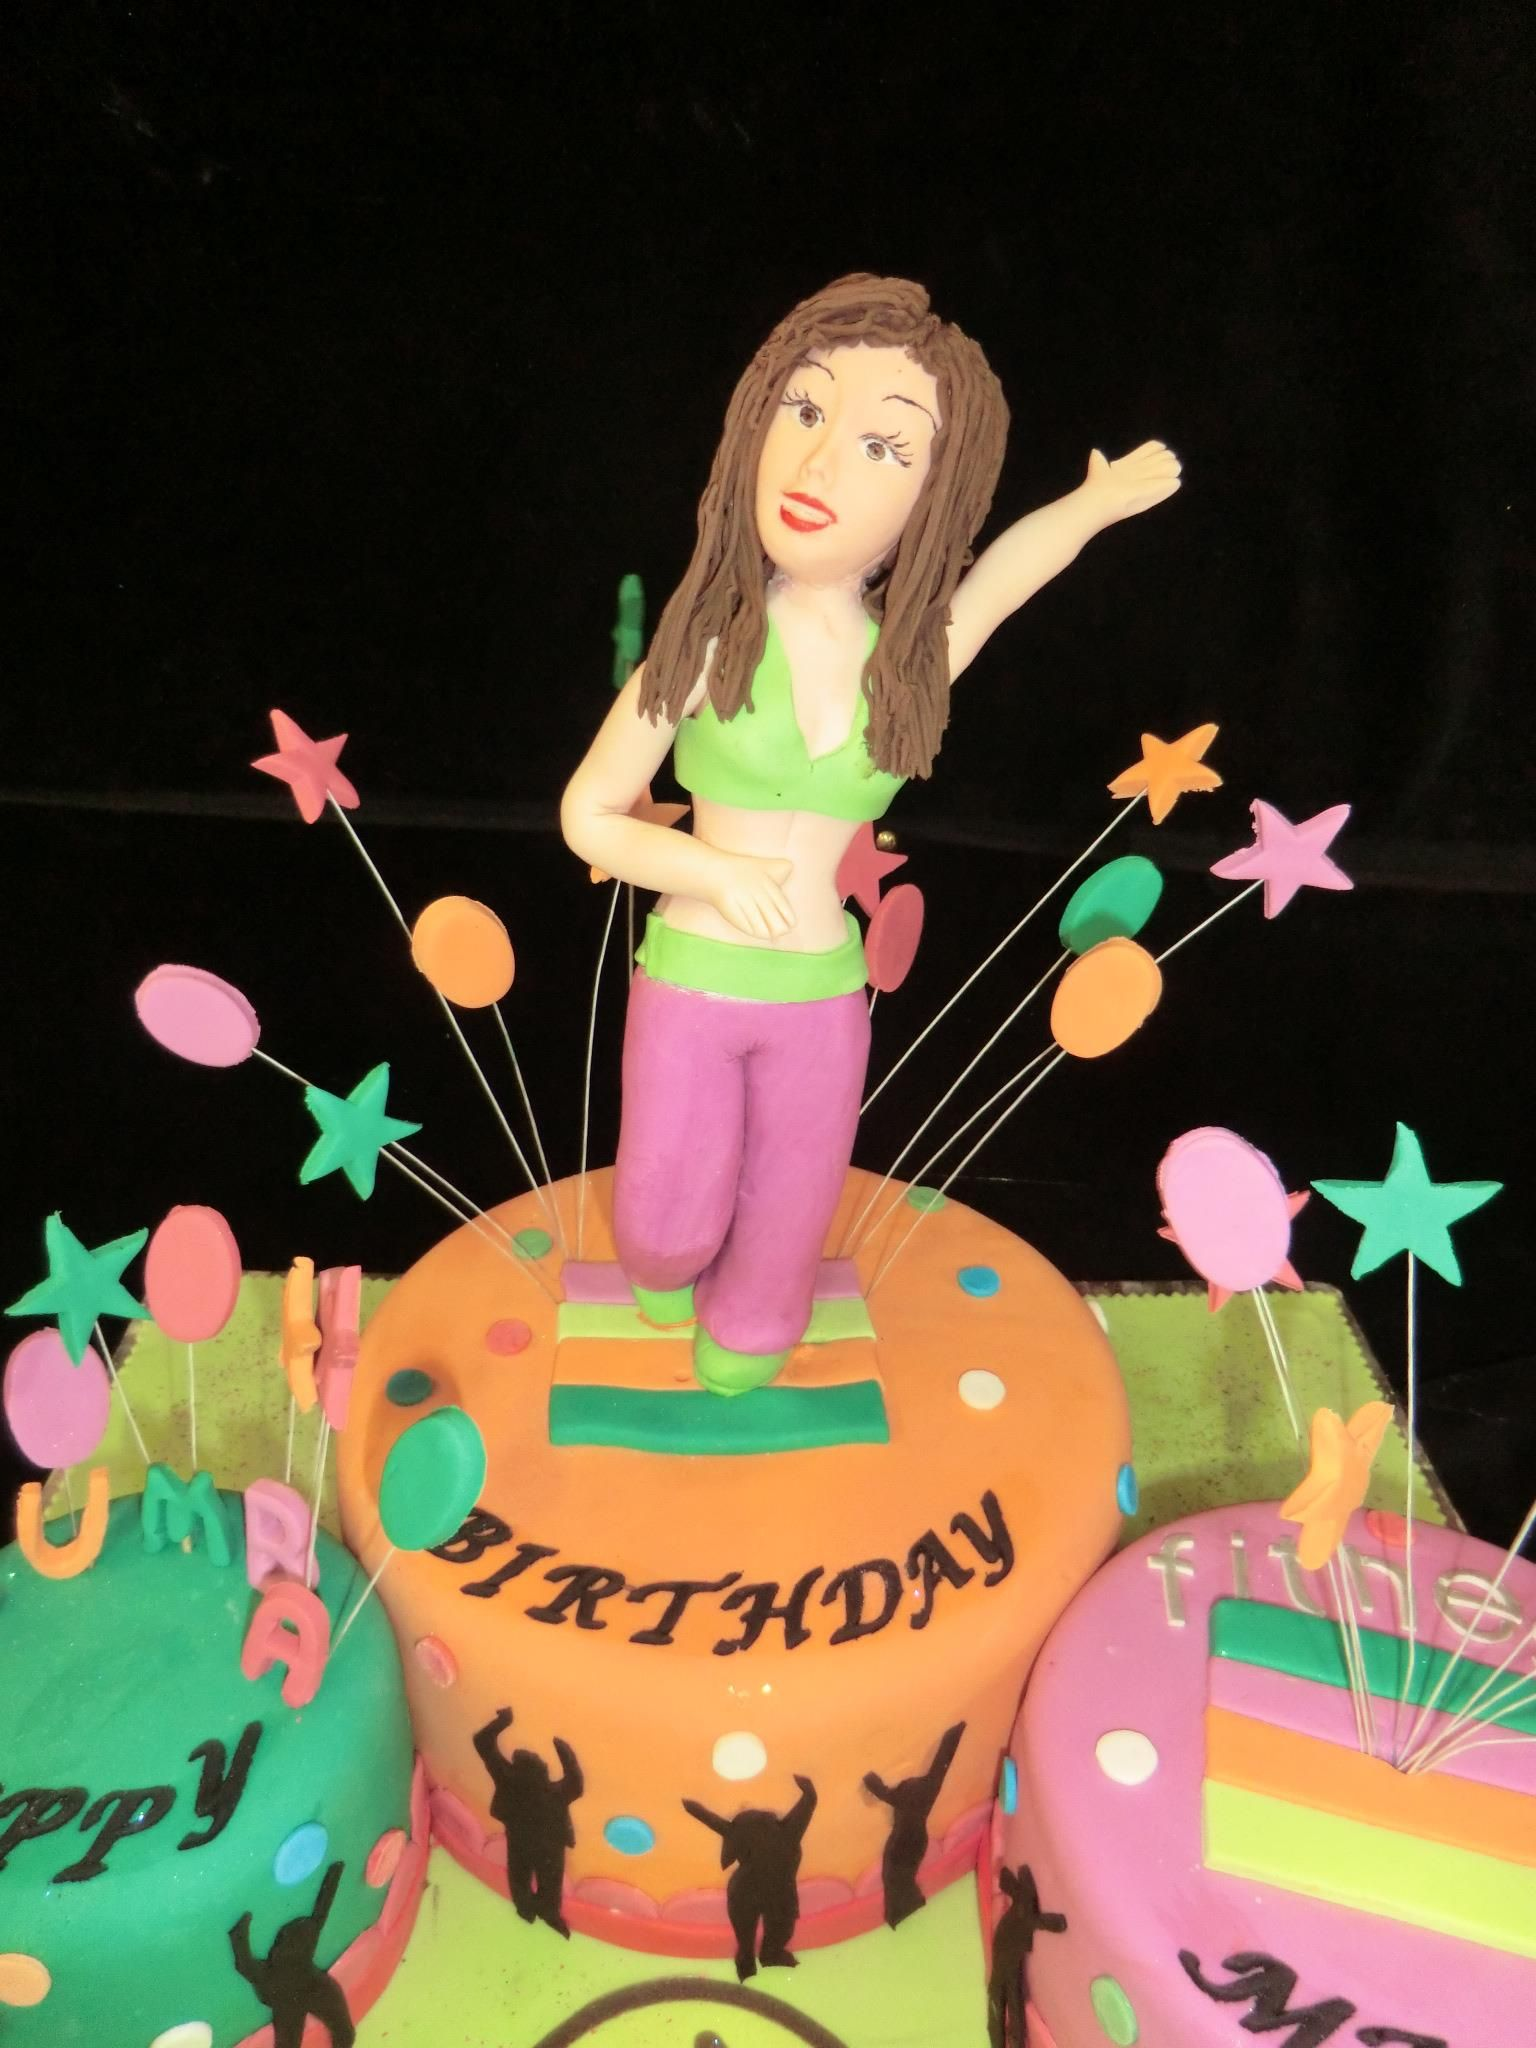 Best Zumba Birthday Cake I Have Ever Seen Zumba Birthday